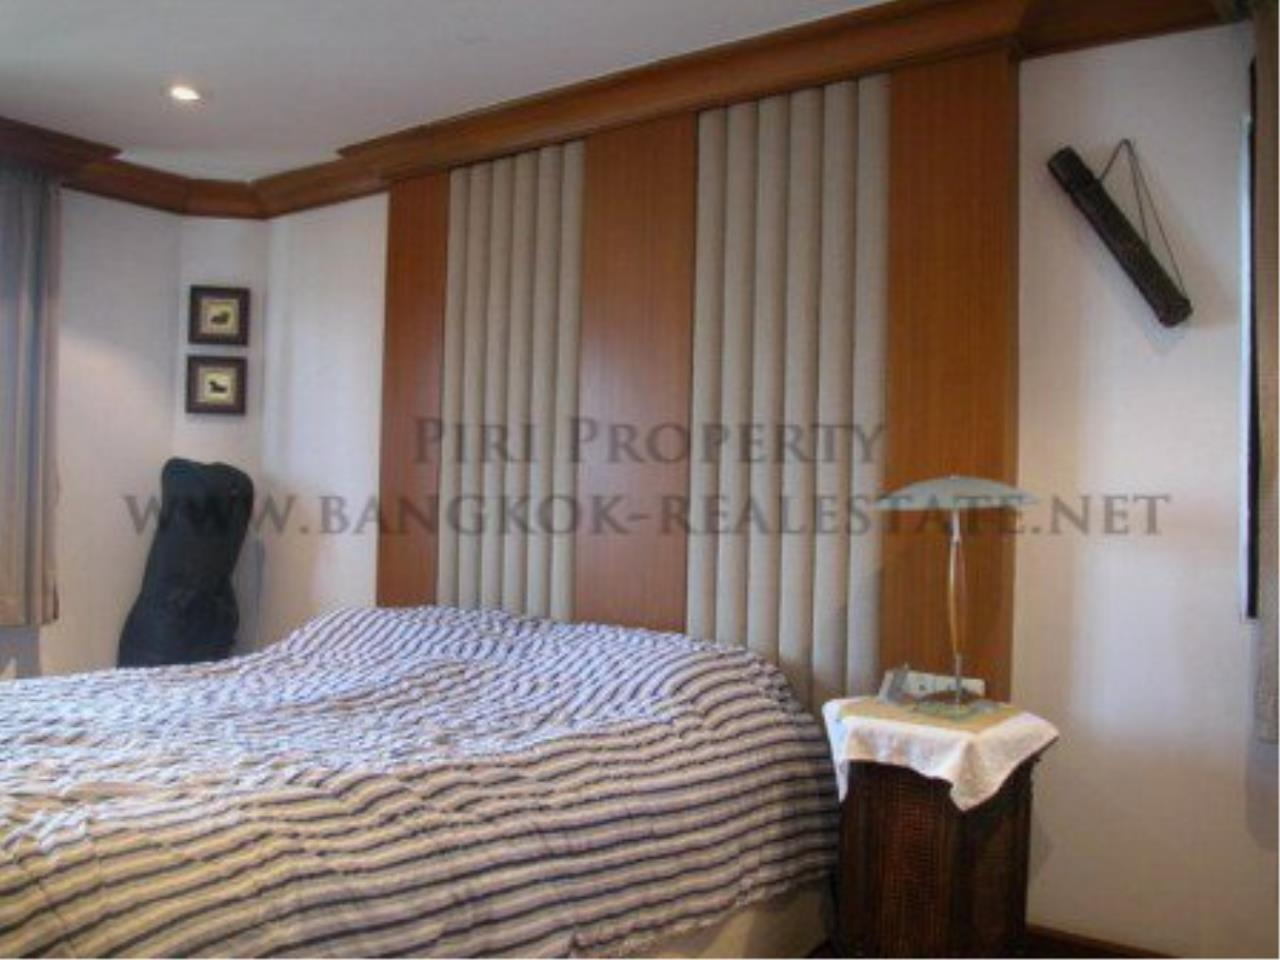 Piri Property Agency's Spacious Duplex Penthouse for Sale in Sathorn with more than 400 SQM 3